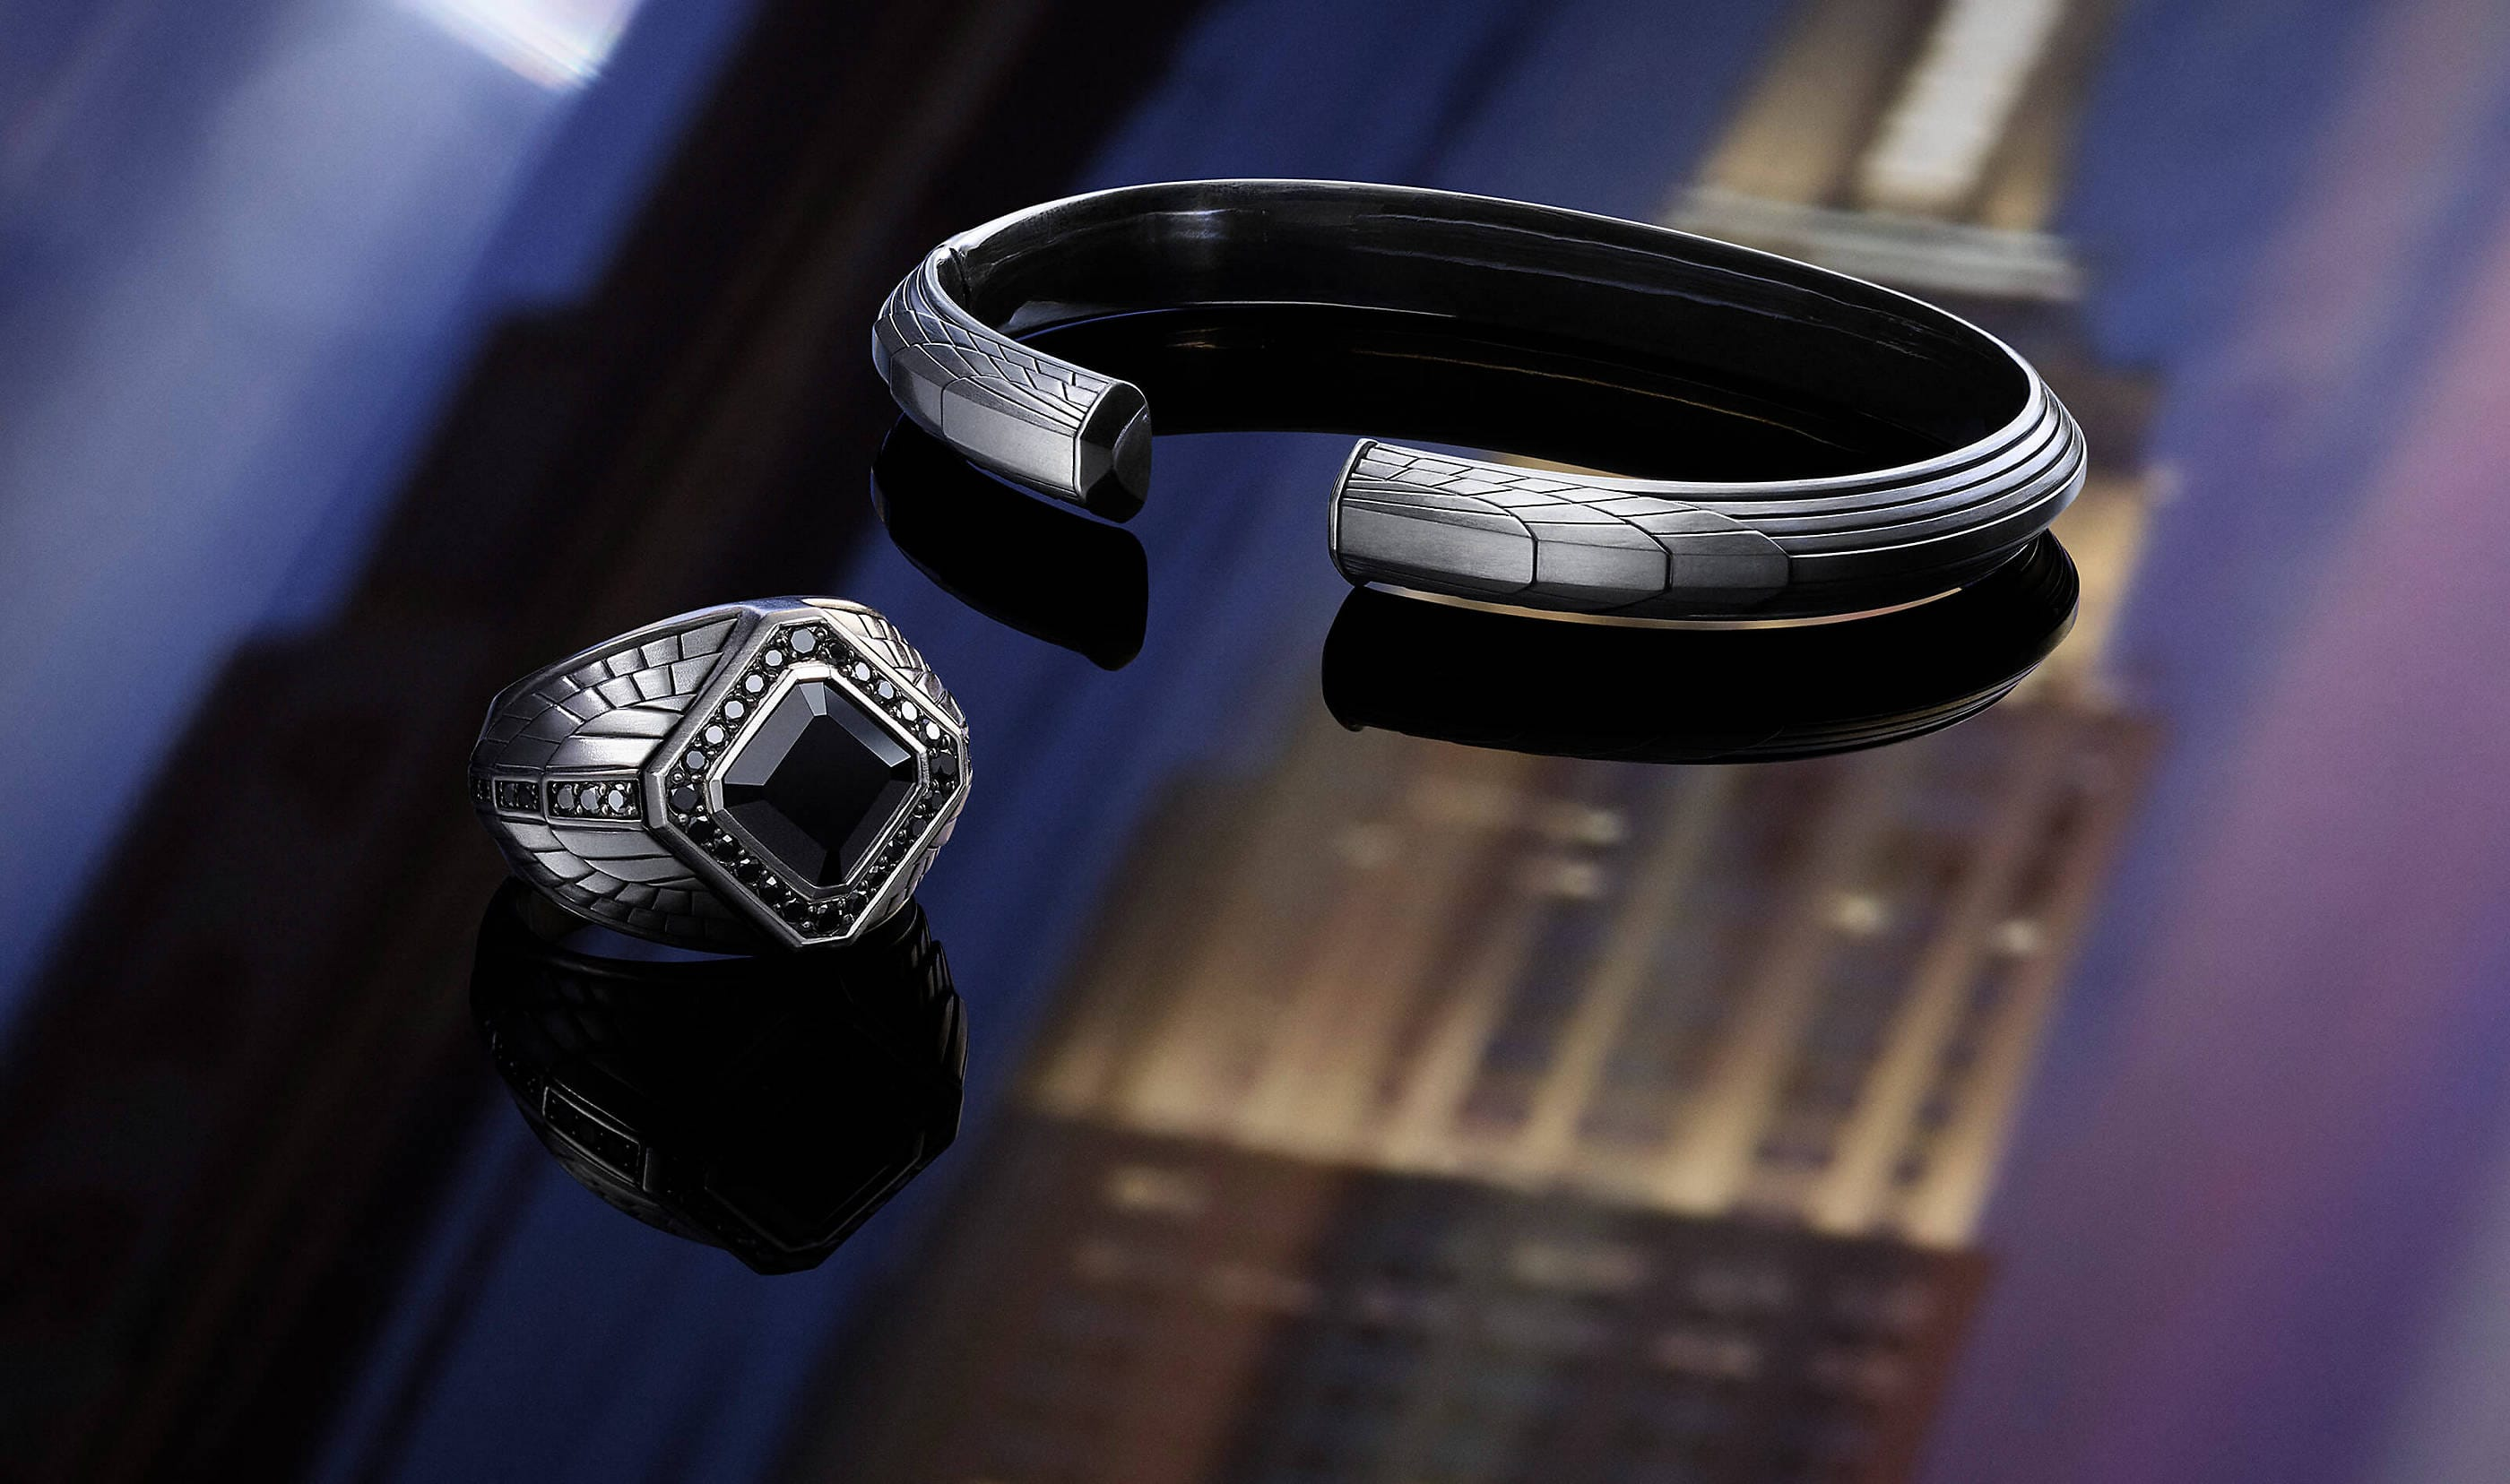 A David Yurman men's signet ring and cuff from the Empire Collection atop a dark surface with reflections of the Empire State Building. The jewelry is crafted from sterling silver with or without black onyx.